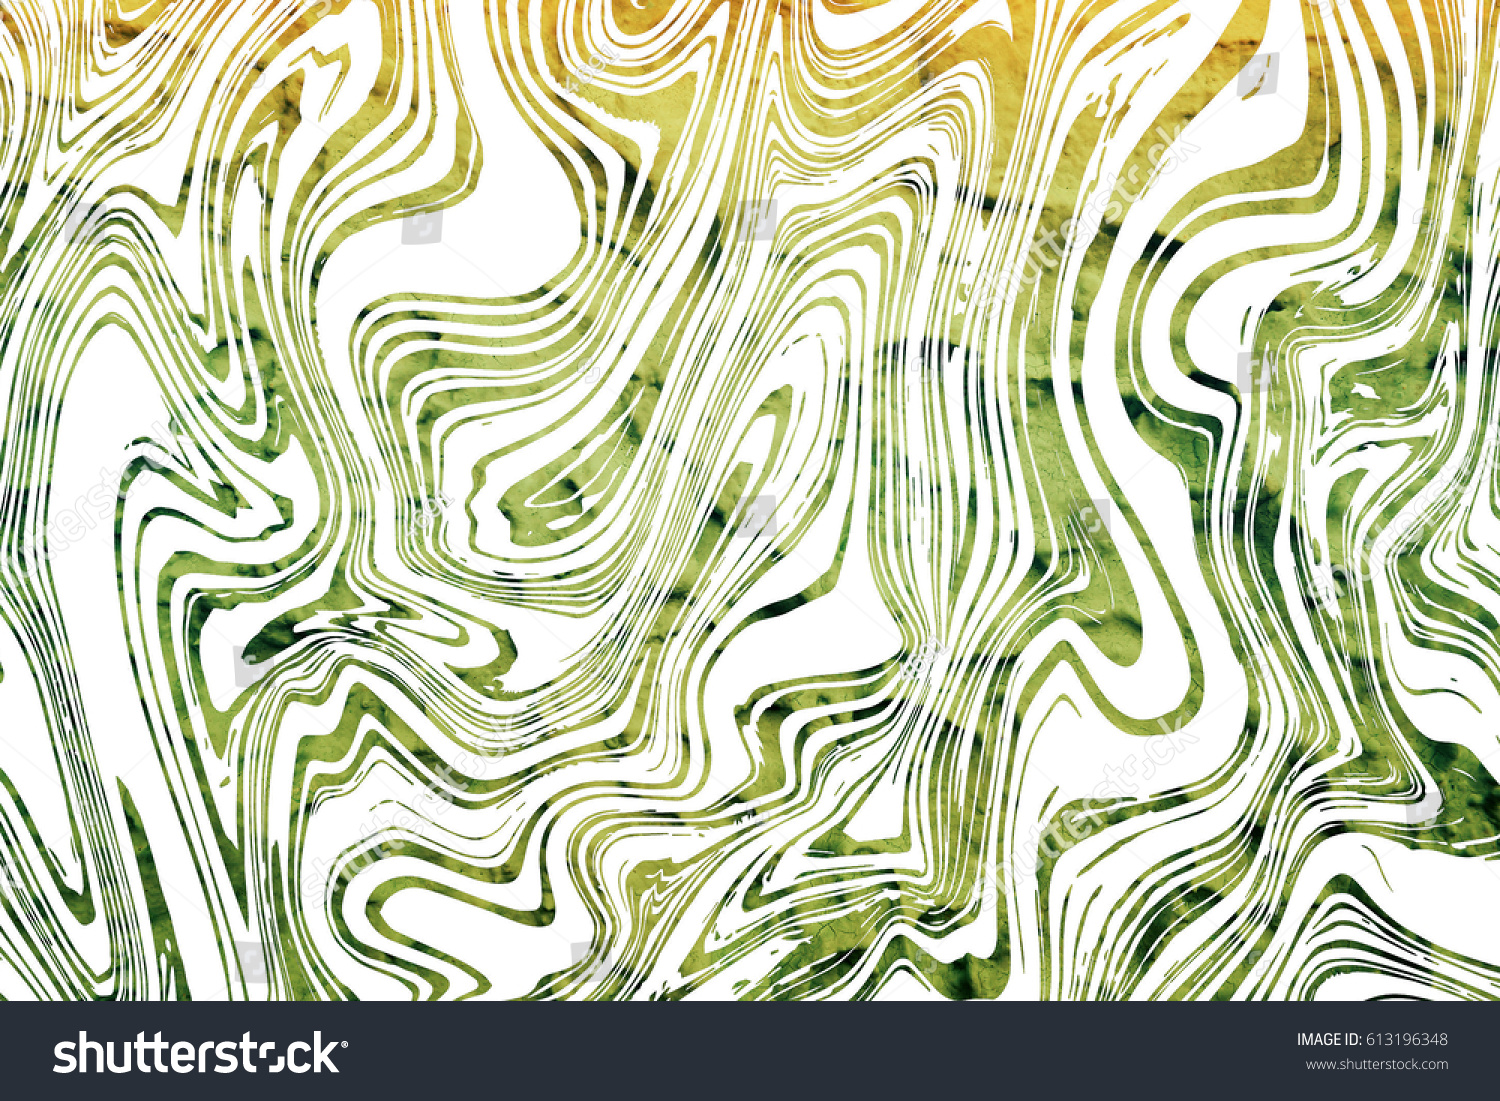 Line art abstract : Green line art abstract background stock illustration